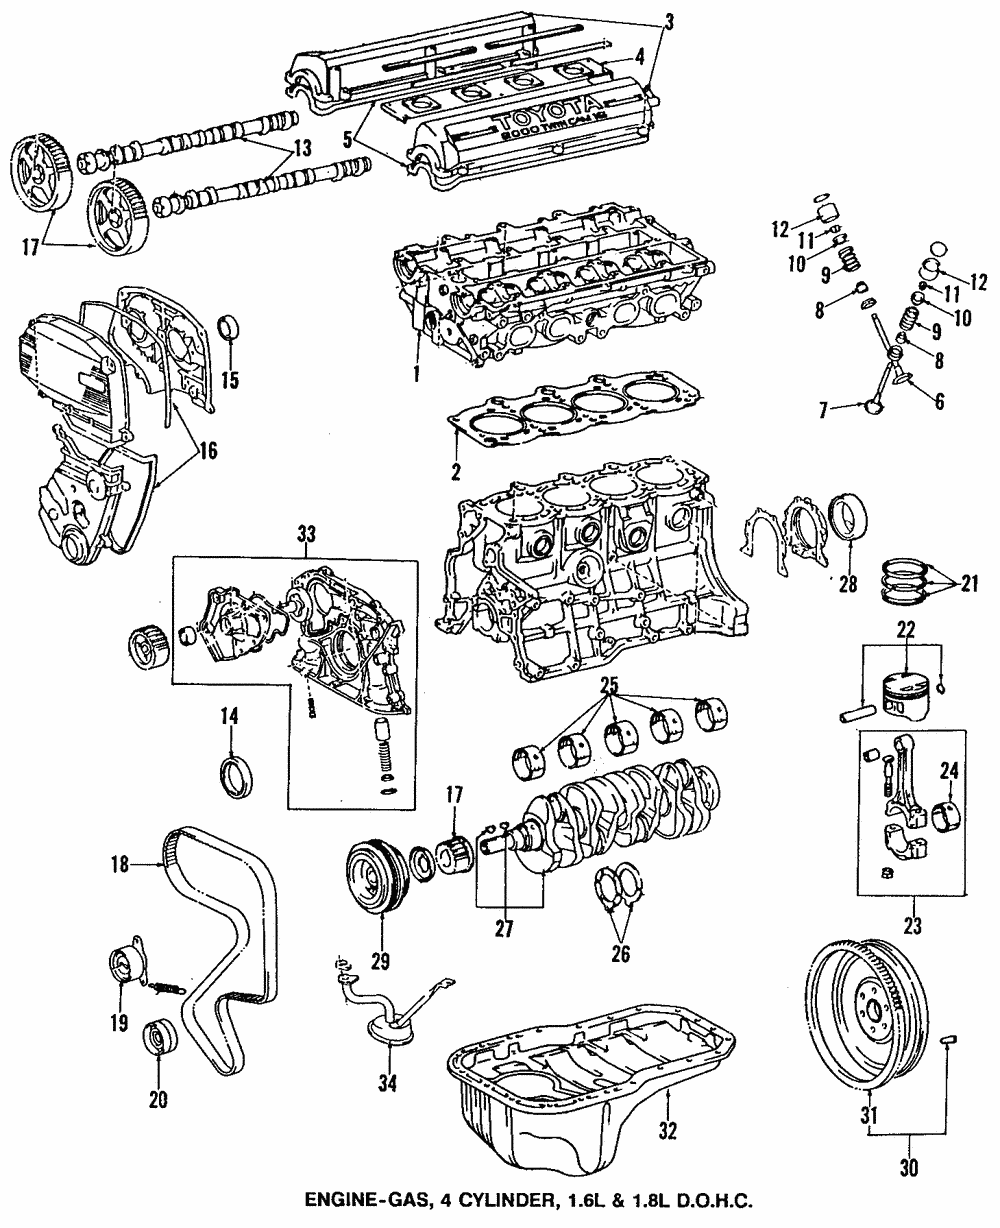 Genuine Toyota Rear Main Seal 90080 31021 Ebay Rav4 Engine Diagram Part Can Be Found As 28 In The Above